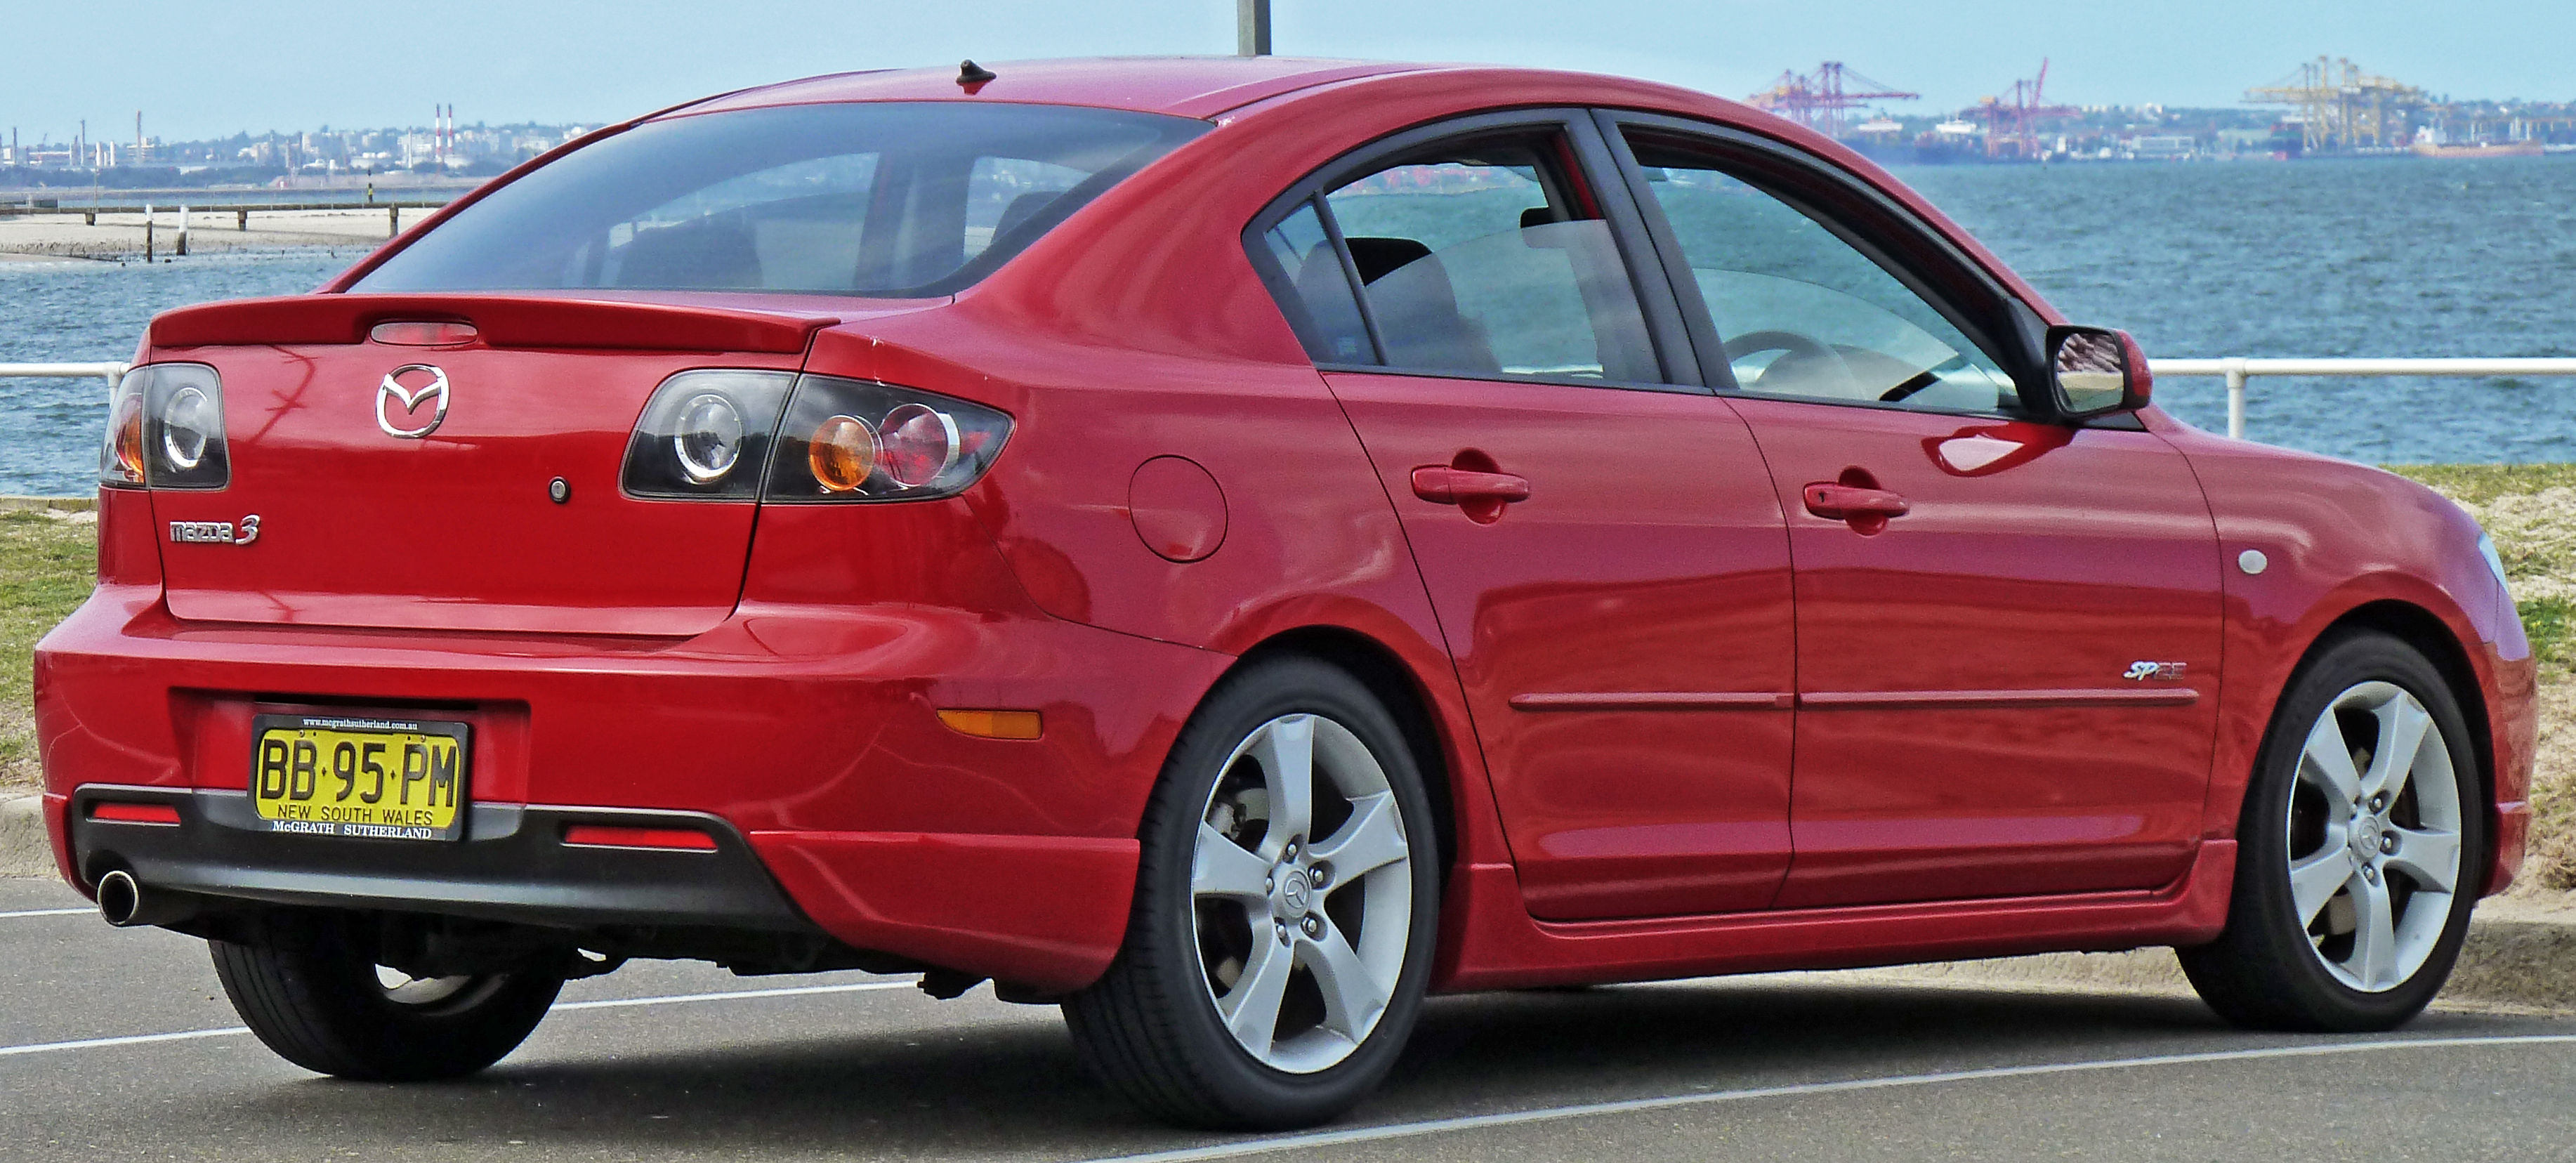 file:2004-2006 mazda 3 (bk) sp23 sedan 01 - wikimedia commons